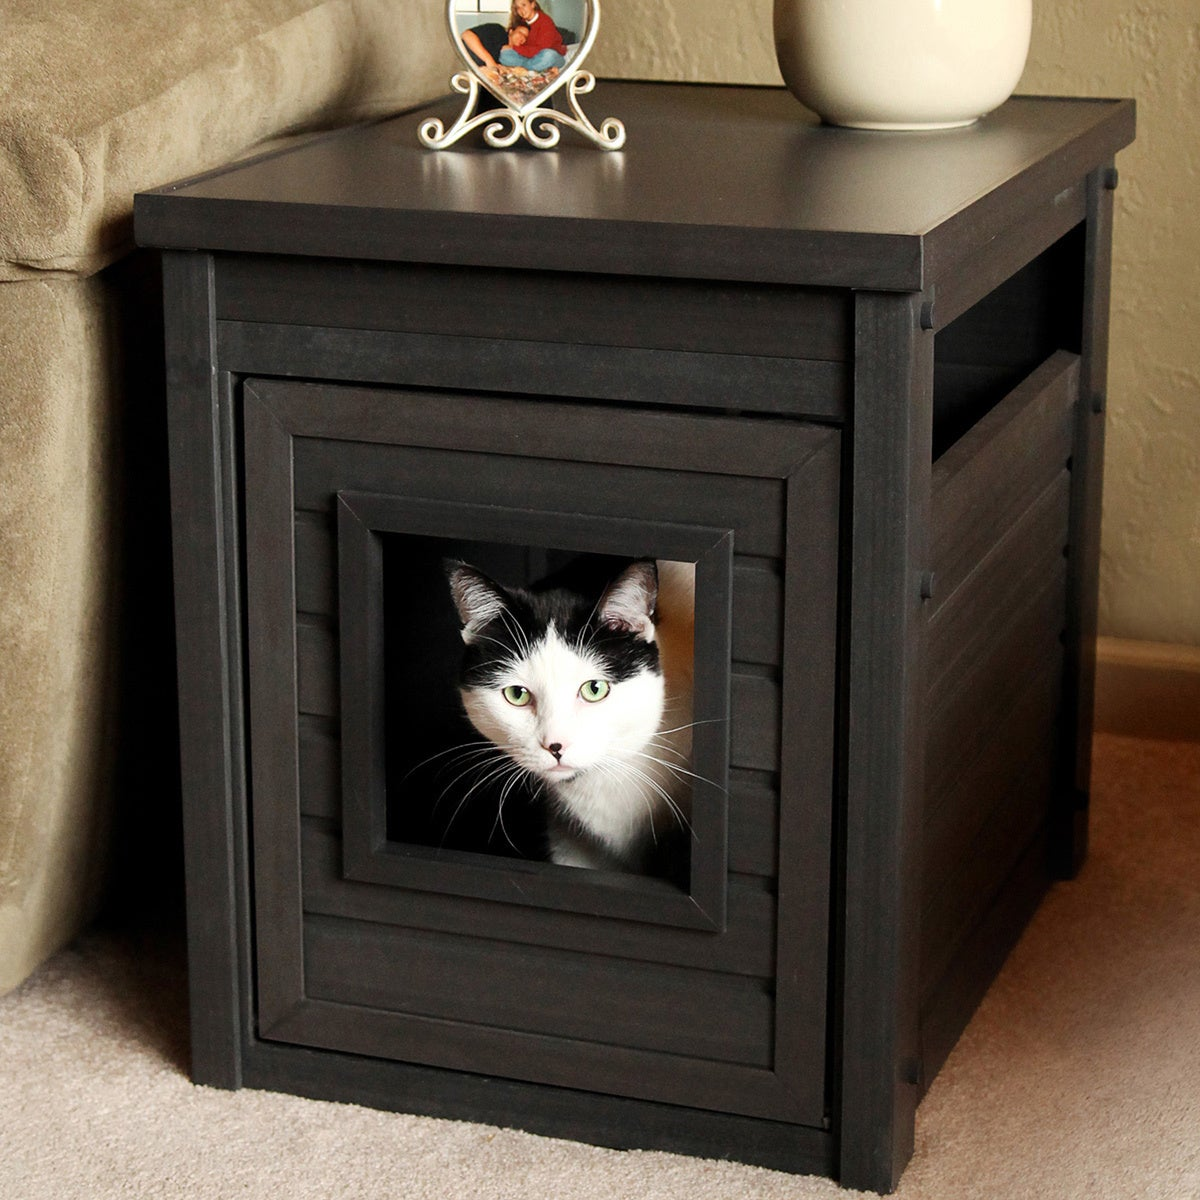 New Age Pet Litter Loo Ecoflex End Table With Hidden Kitty Litter Box Enclosure